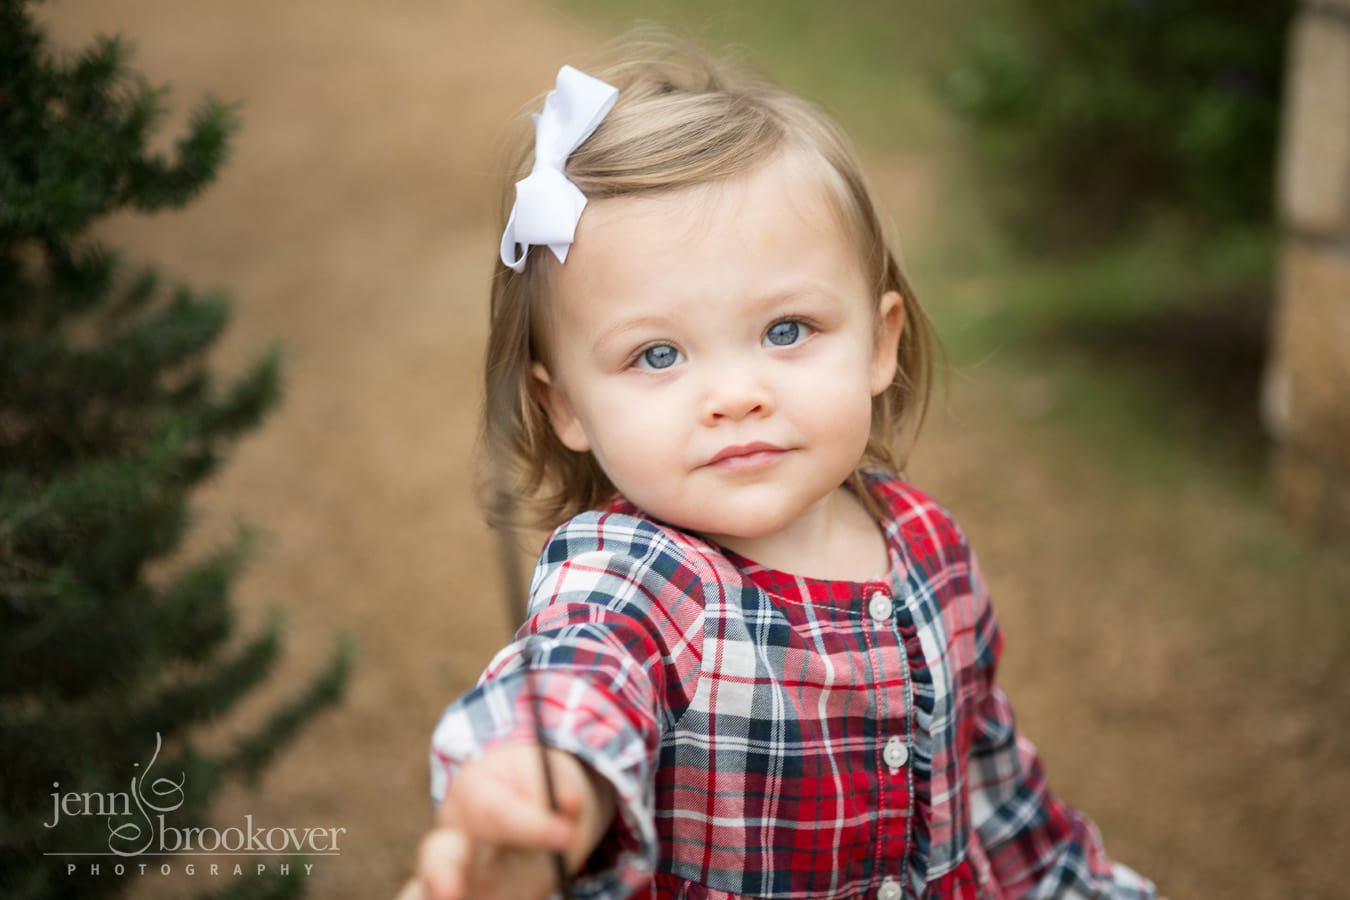 baby girl with blue eyes outside in red plaid outfit